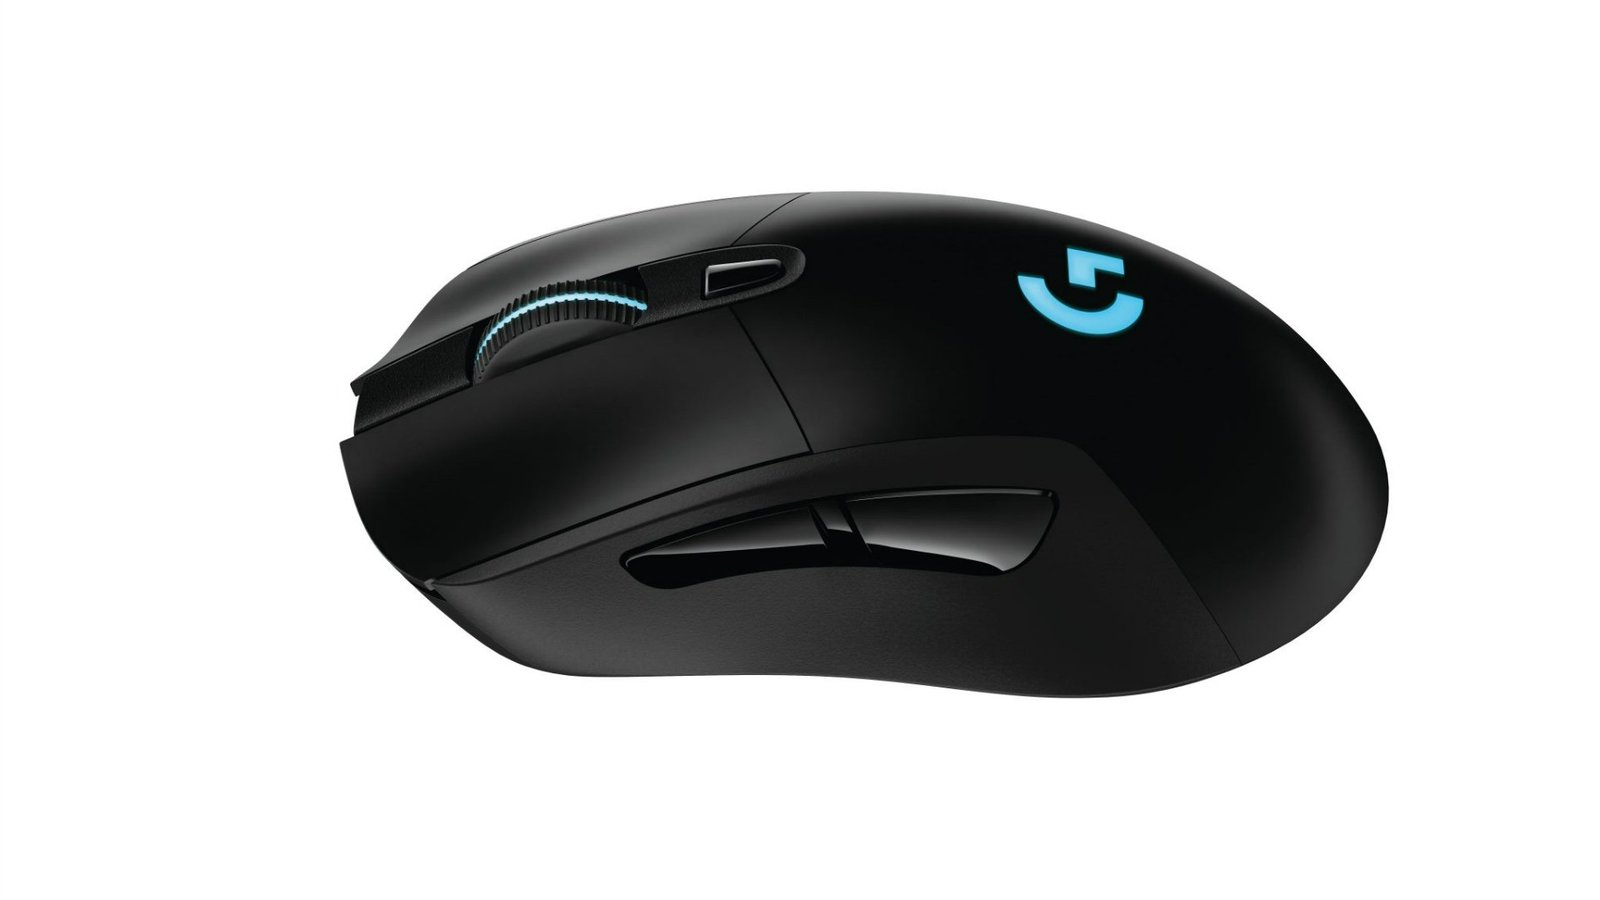 g403 mouse how to know which batch i have